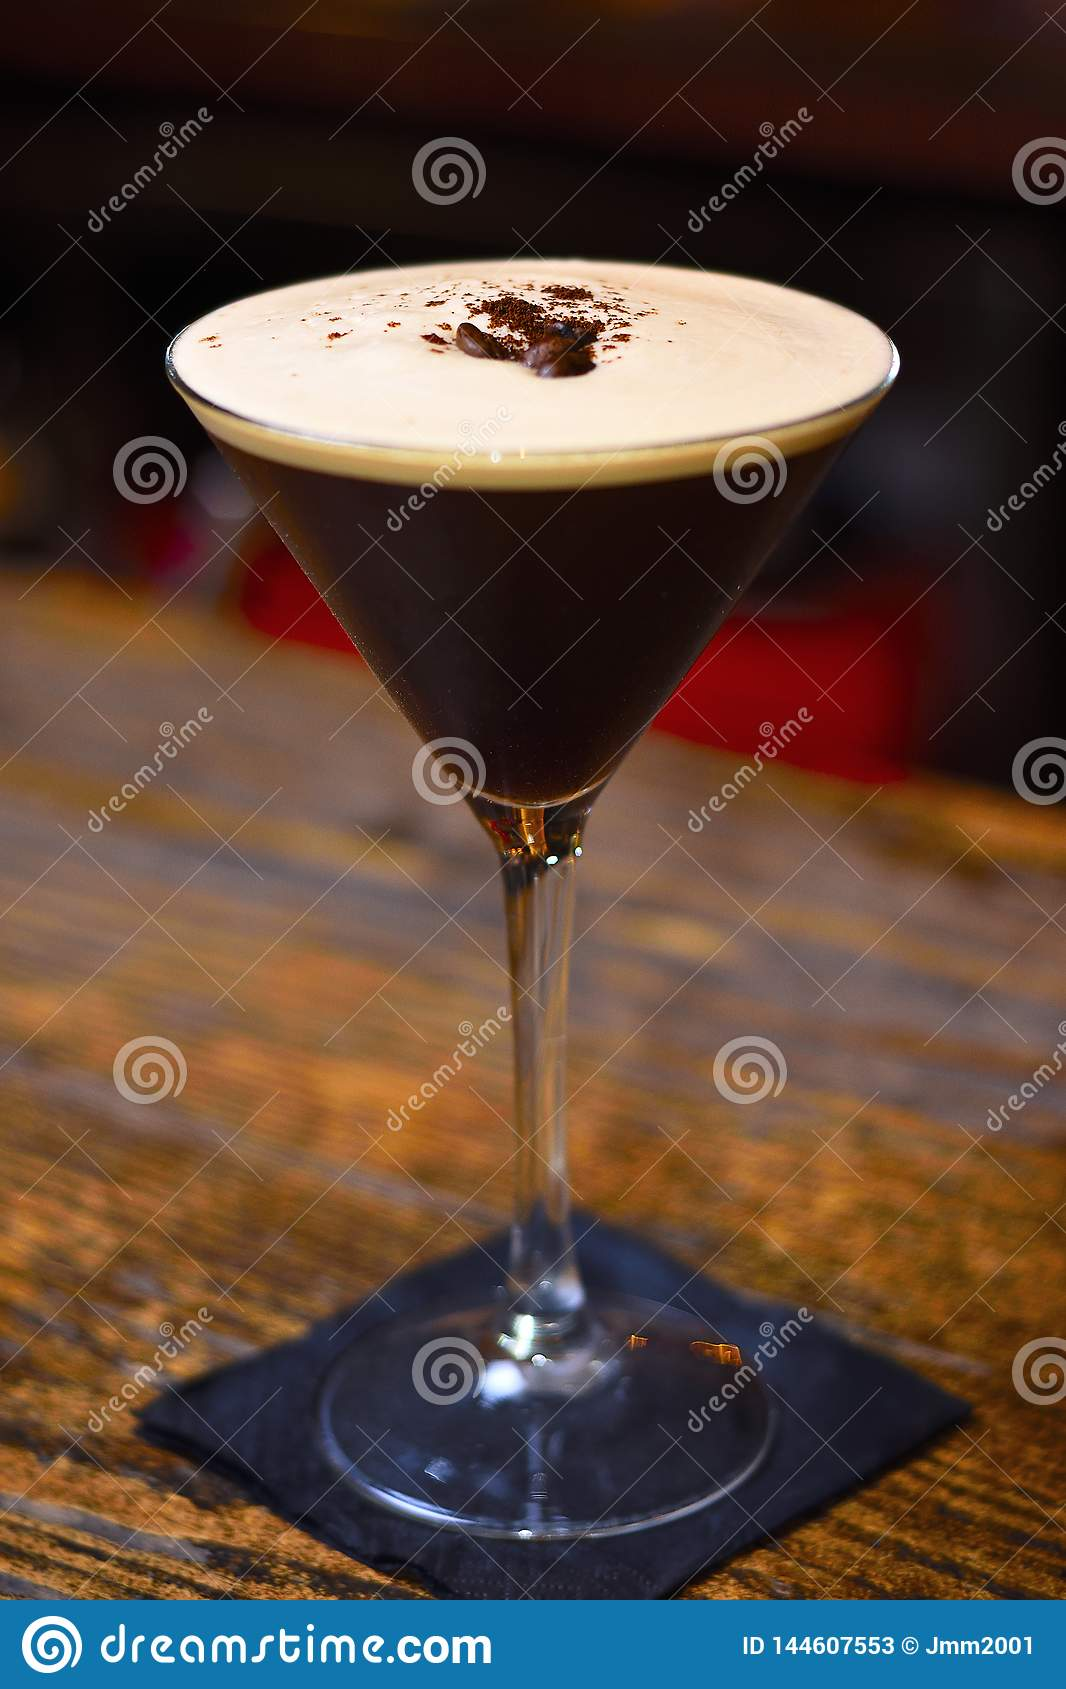 Espresso martini cocktail with coffee grains on bar